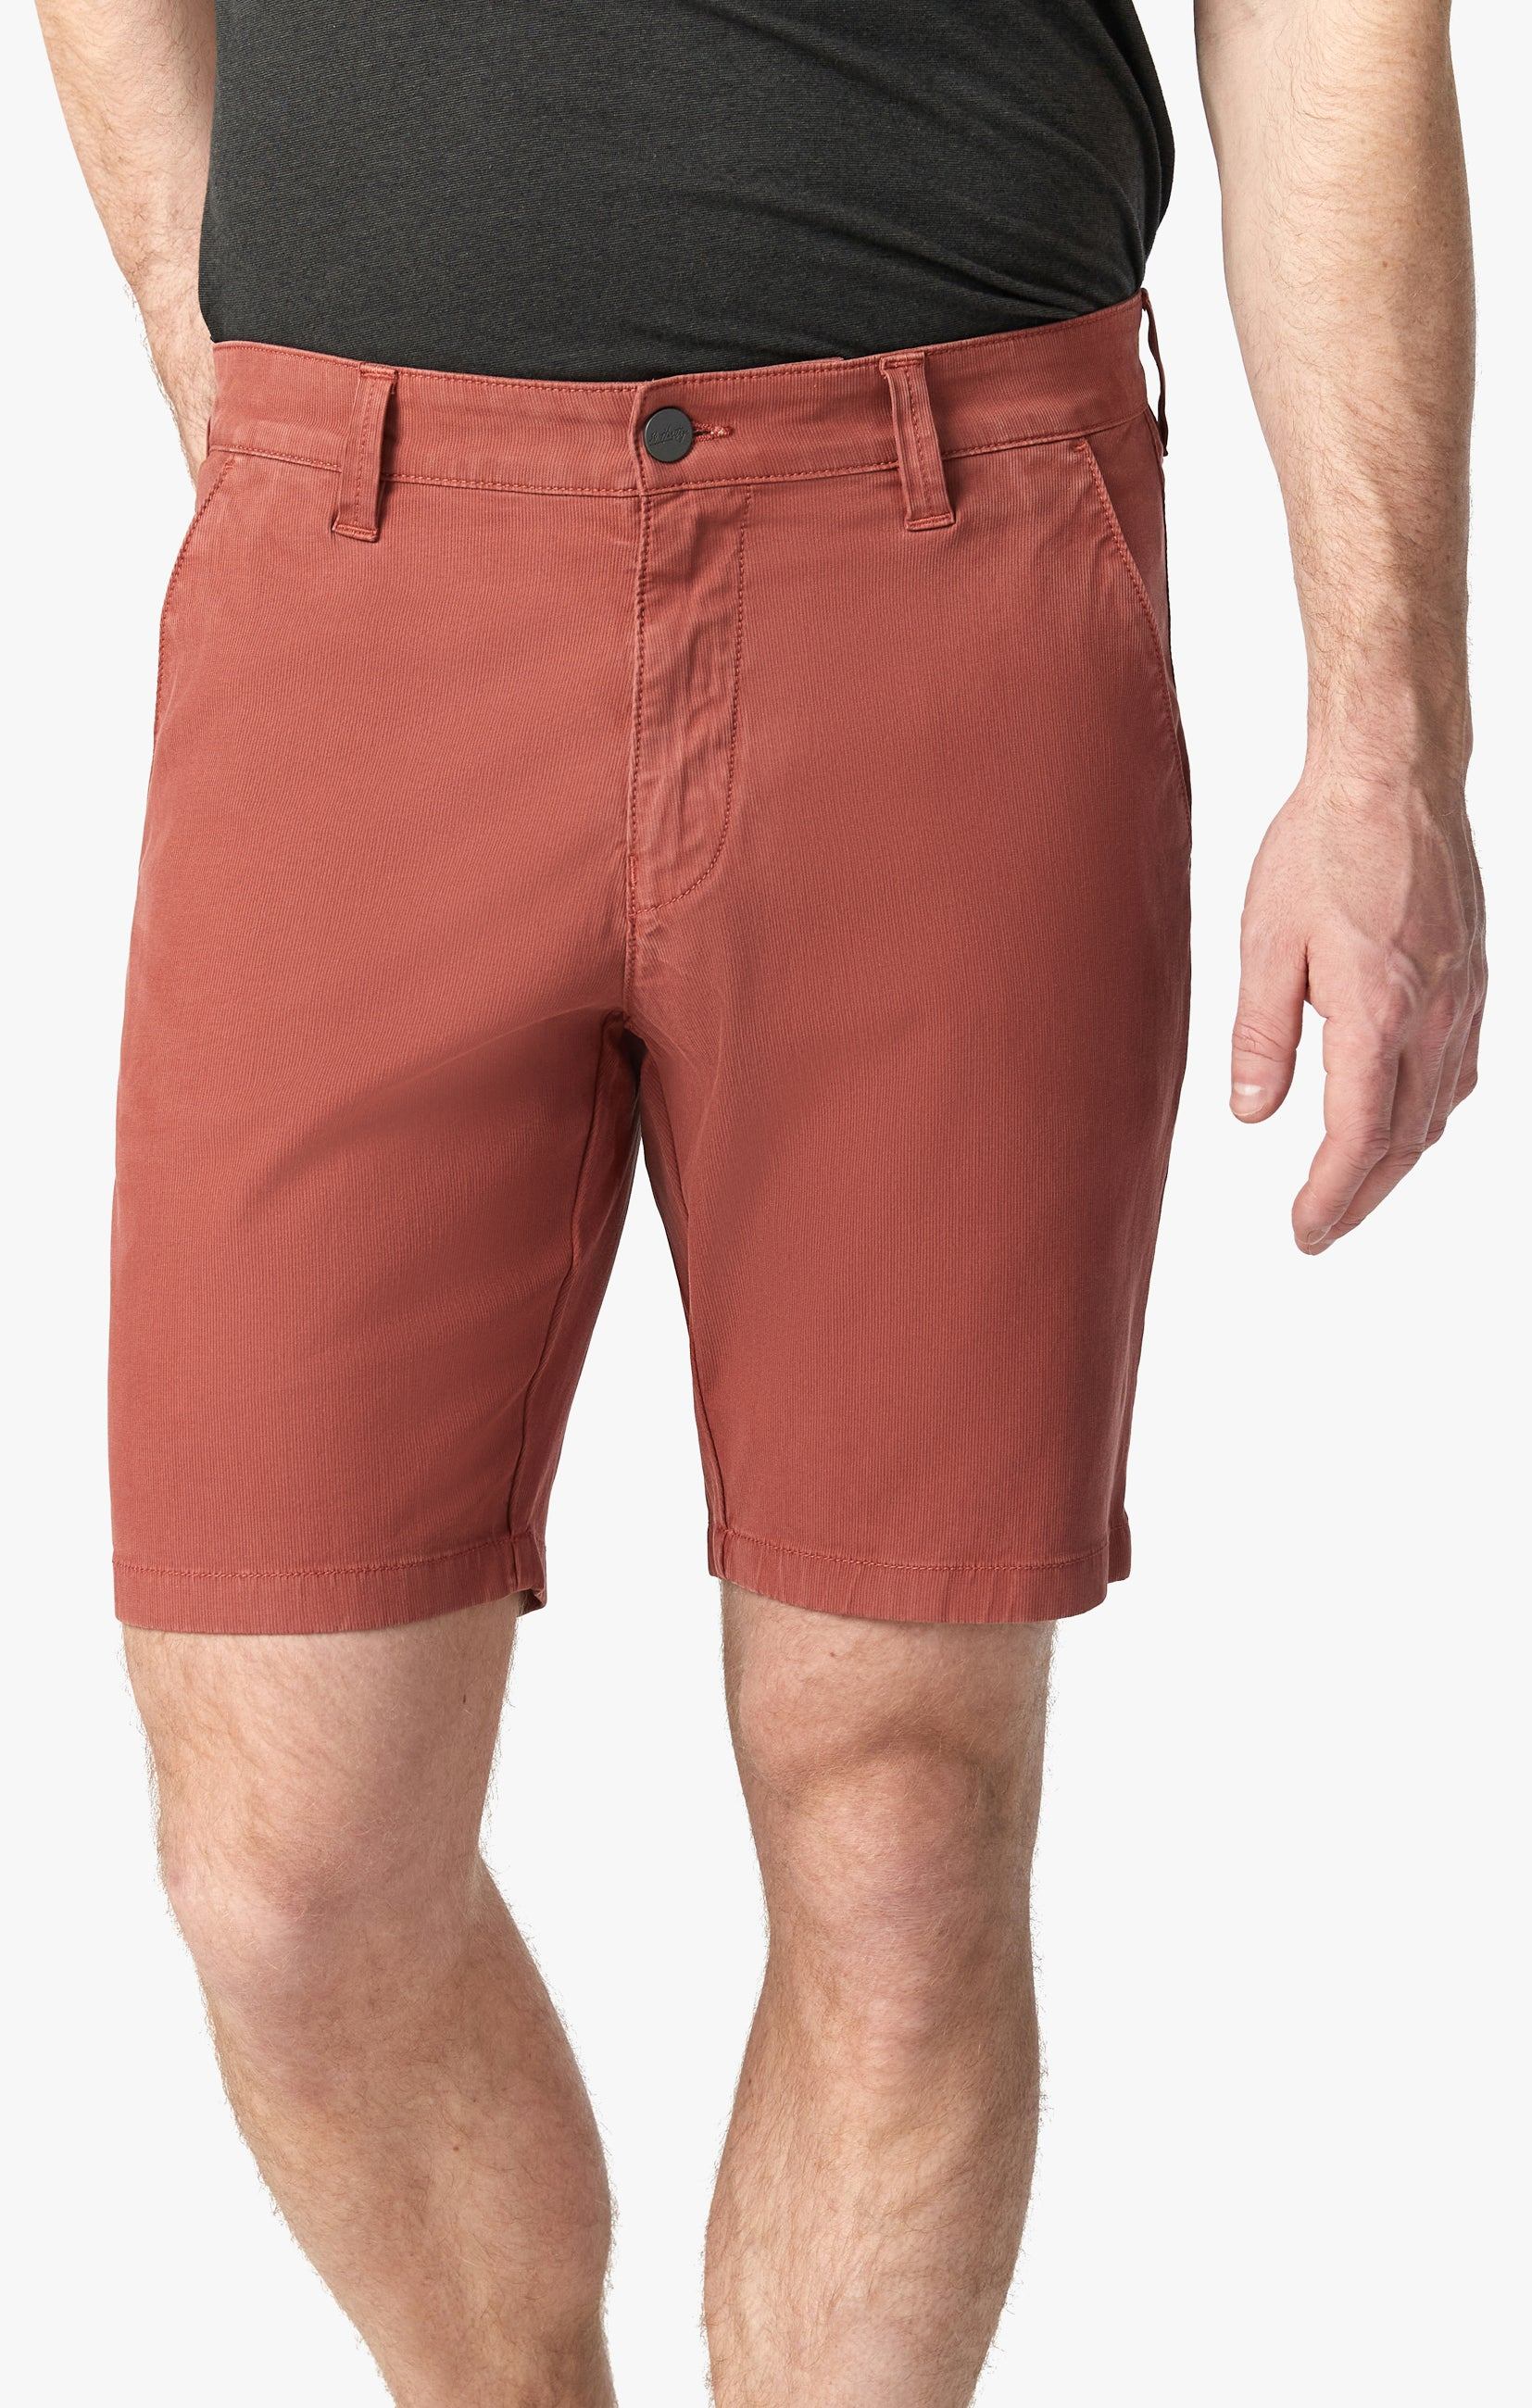 Arizona Shorts in Brick Fine Touch Image 4